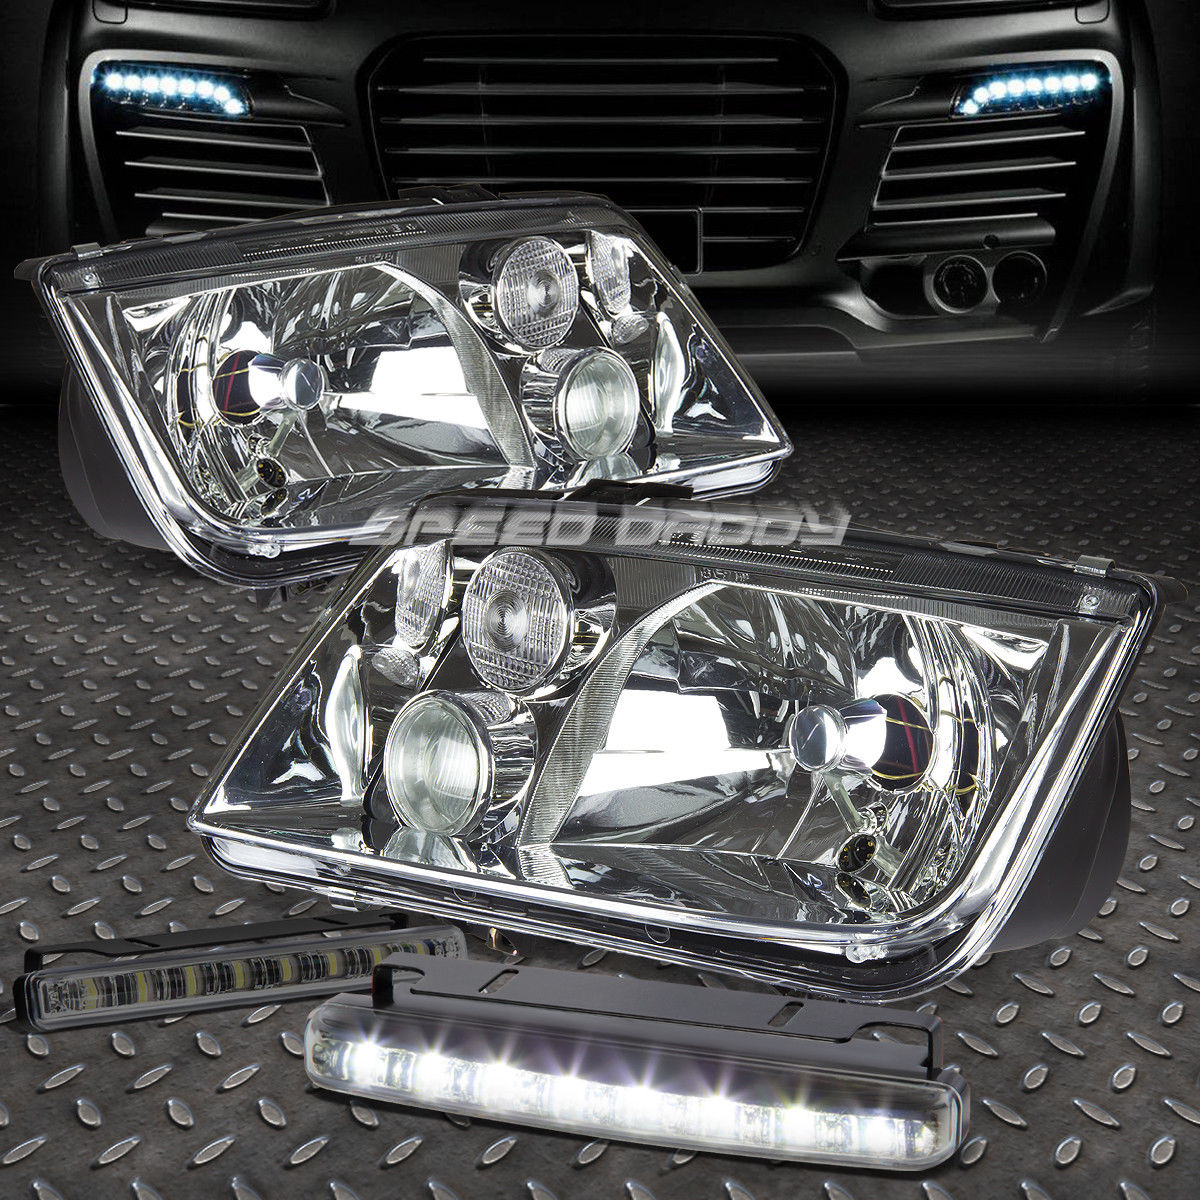 フォグライト CHROME HOUSING HEADLIGHT LAMP+8 LED SMOKE FOG LIGHT FOR 99-05 VW JETTA/BORA CHROME HOUSING HEADLIGHT LAMP + 99-05 VW JETTA / BORAのための8個のLED煙霧ライト